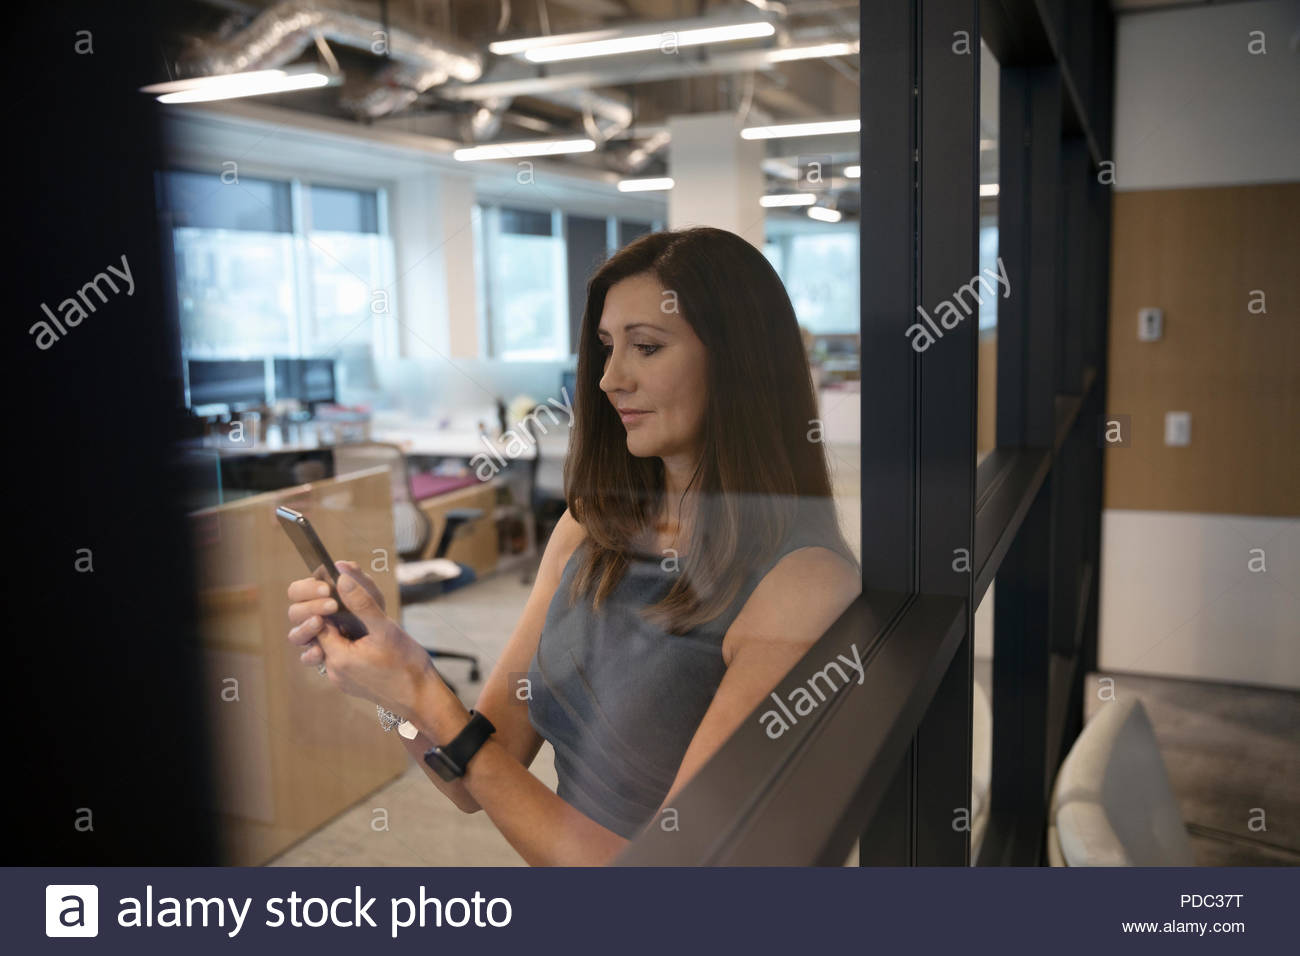 Businesswoman using smart phone in office - Stock Image